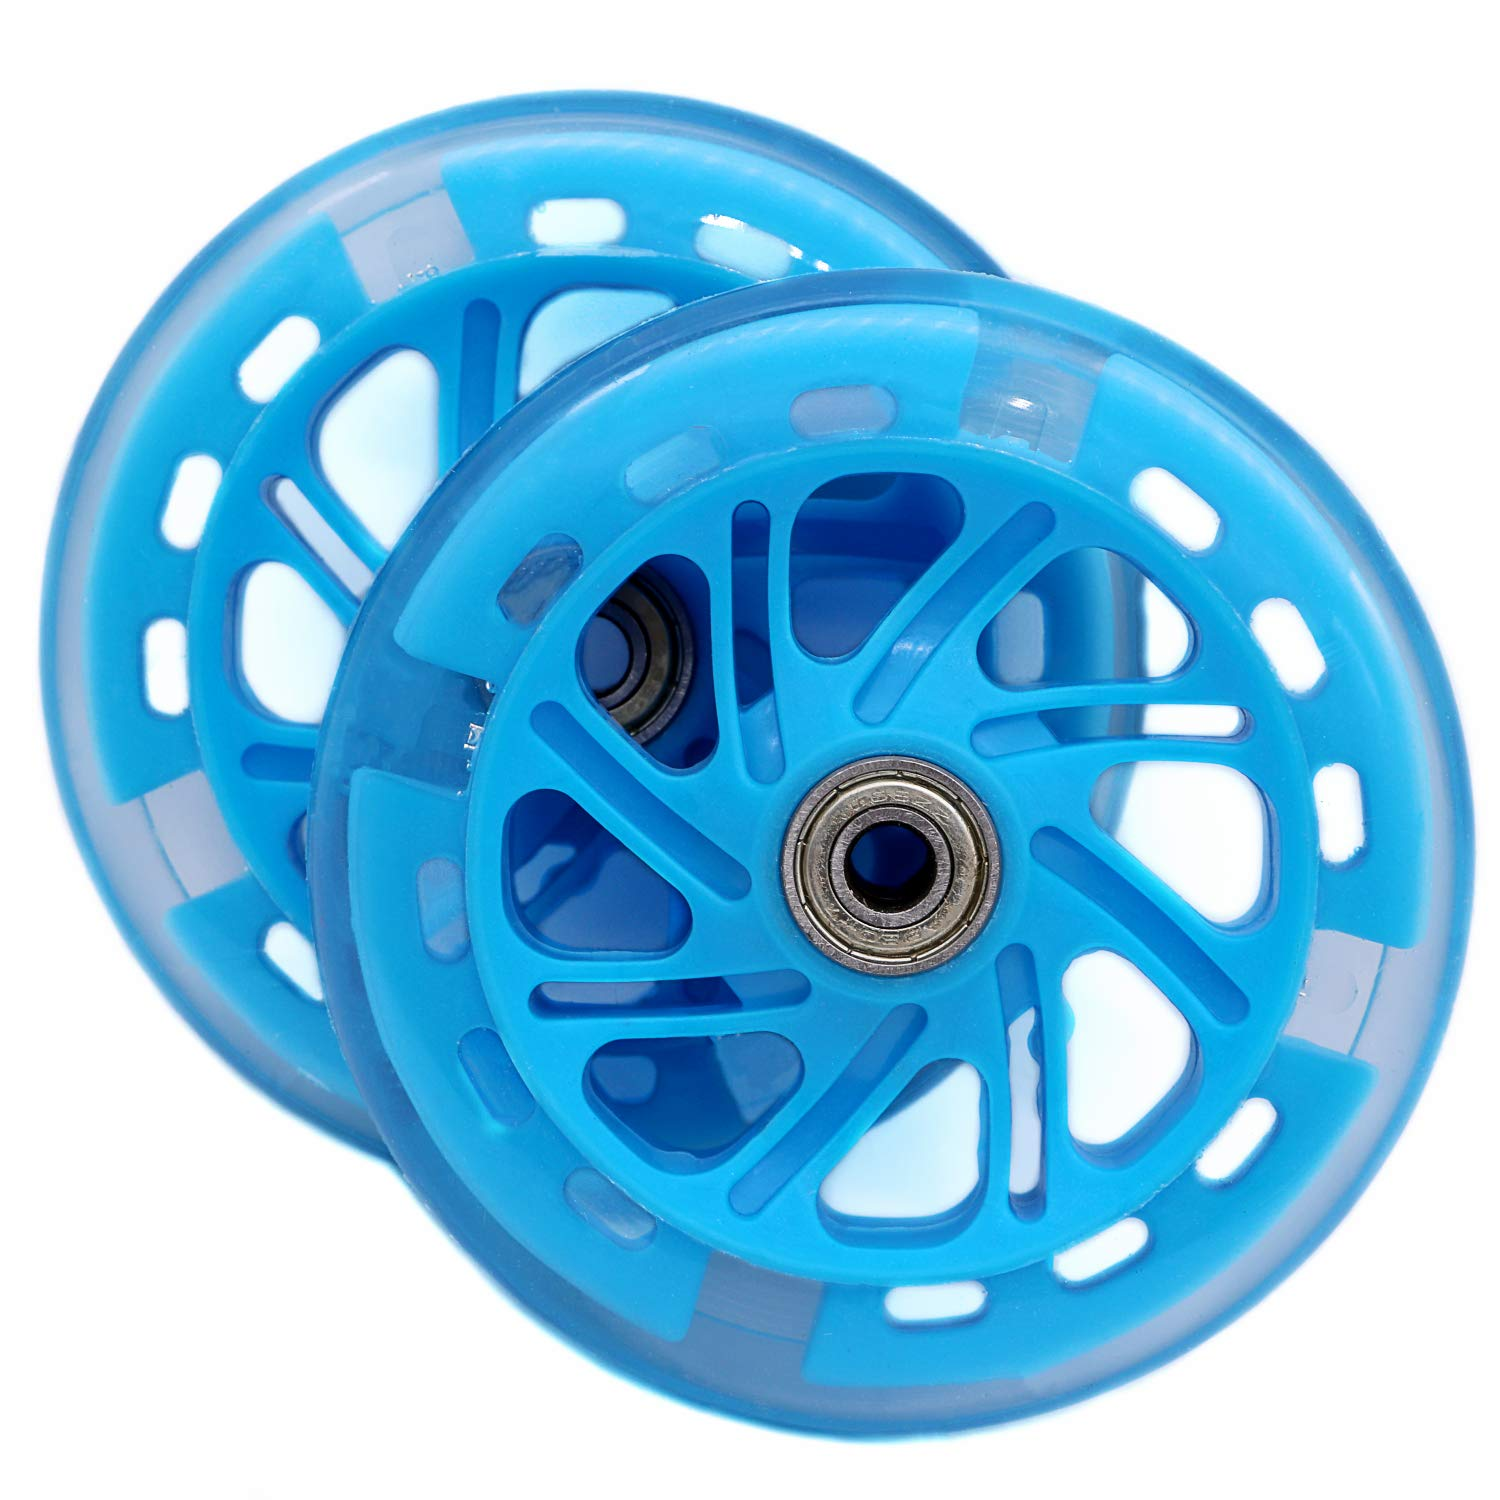 AOWISH 120mm Light Up Scooter Wheels Pair 120 mm LED Flashing 3 Wheel Scooter Front Wheel Replacement with Bearings for Kids Toddler Micro Kickboard Maxi Foldable Deluxe Kick Scooters (Blue)